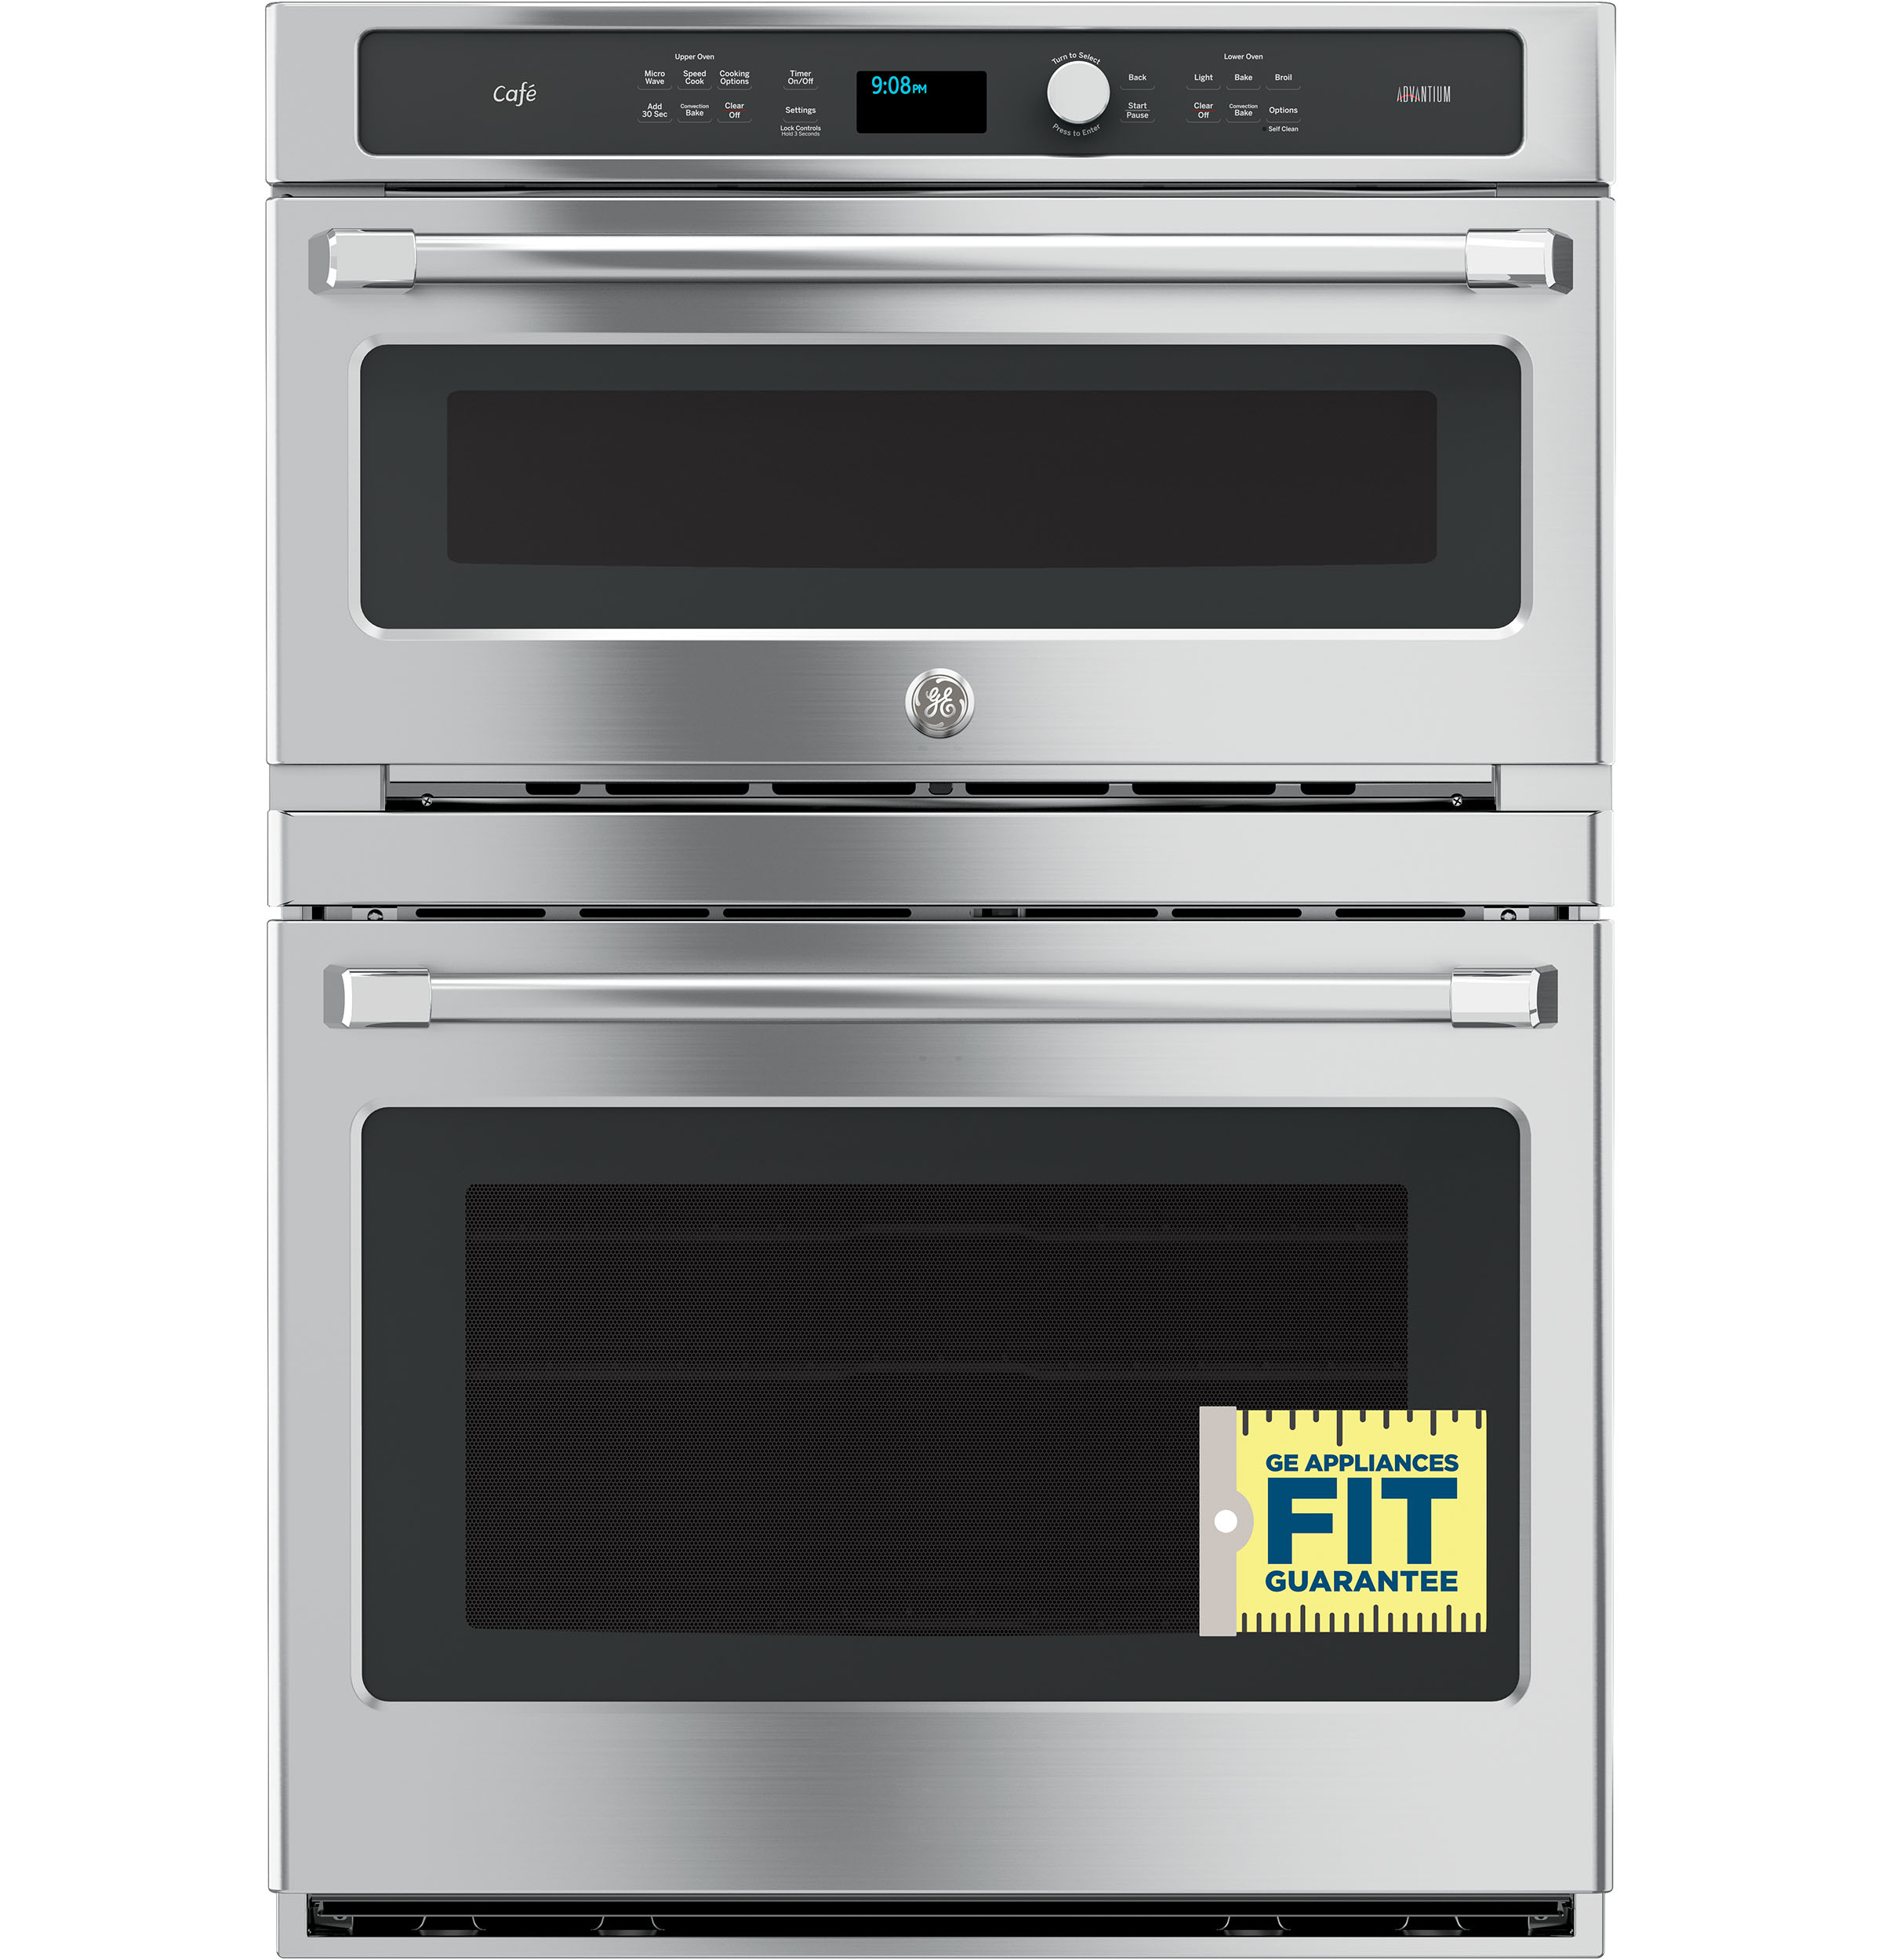 Model: CT9800SHSS   GE Cafe GE Café™ Series 30 in. Combination Double Wall Oven with Convection and Advantium® Technology